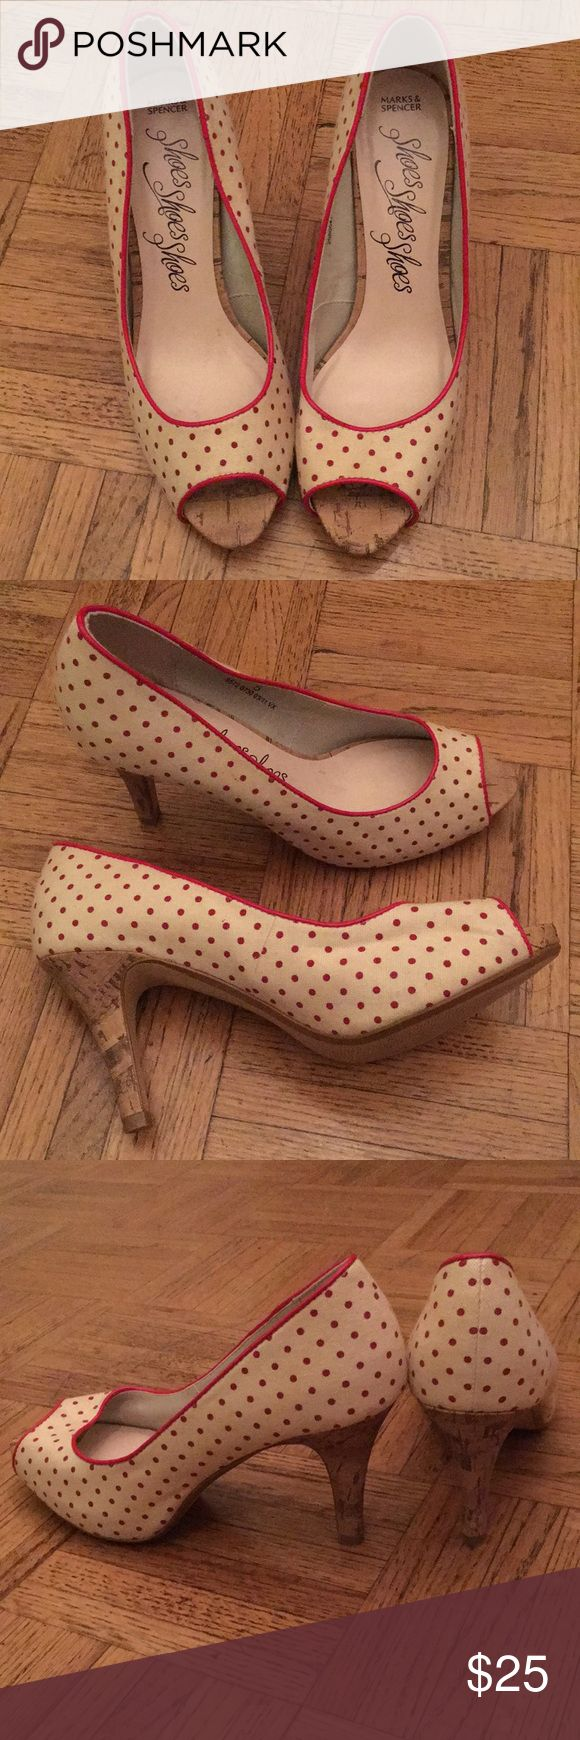 Polka dot peep toe heels Polka dot peep toe heels, very comfortable. Labeled as 5 but fits 7 perfectly Marks & Spencer Shoes Heels